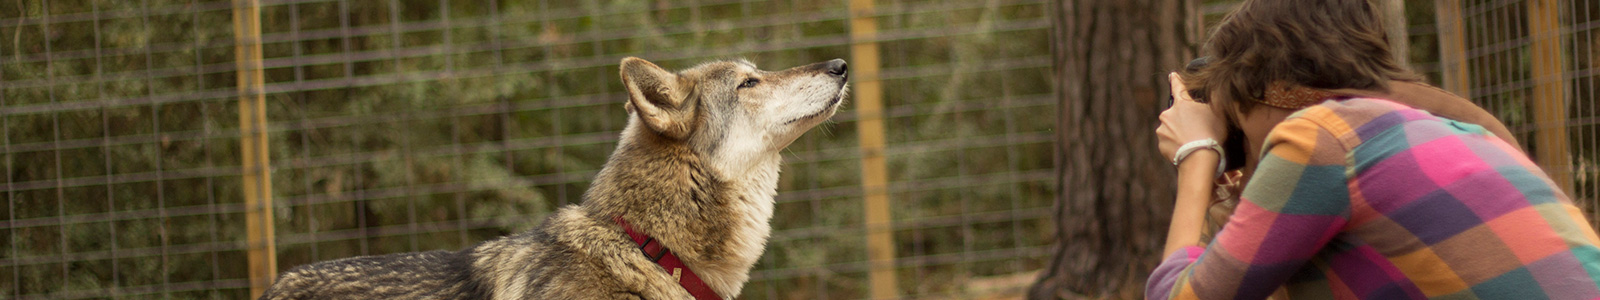 Texas Wolfdog Project Loving Tributes - Detail Header Image